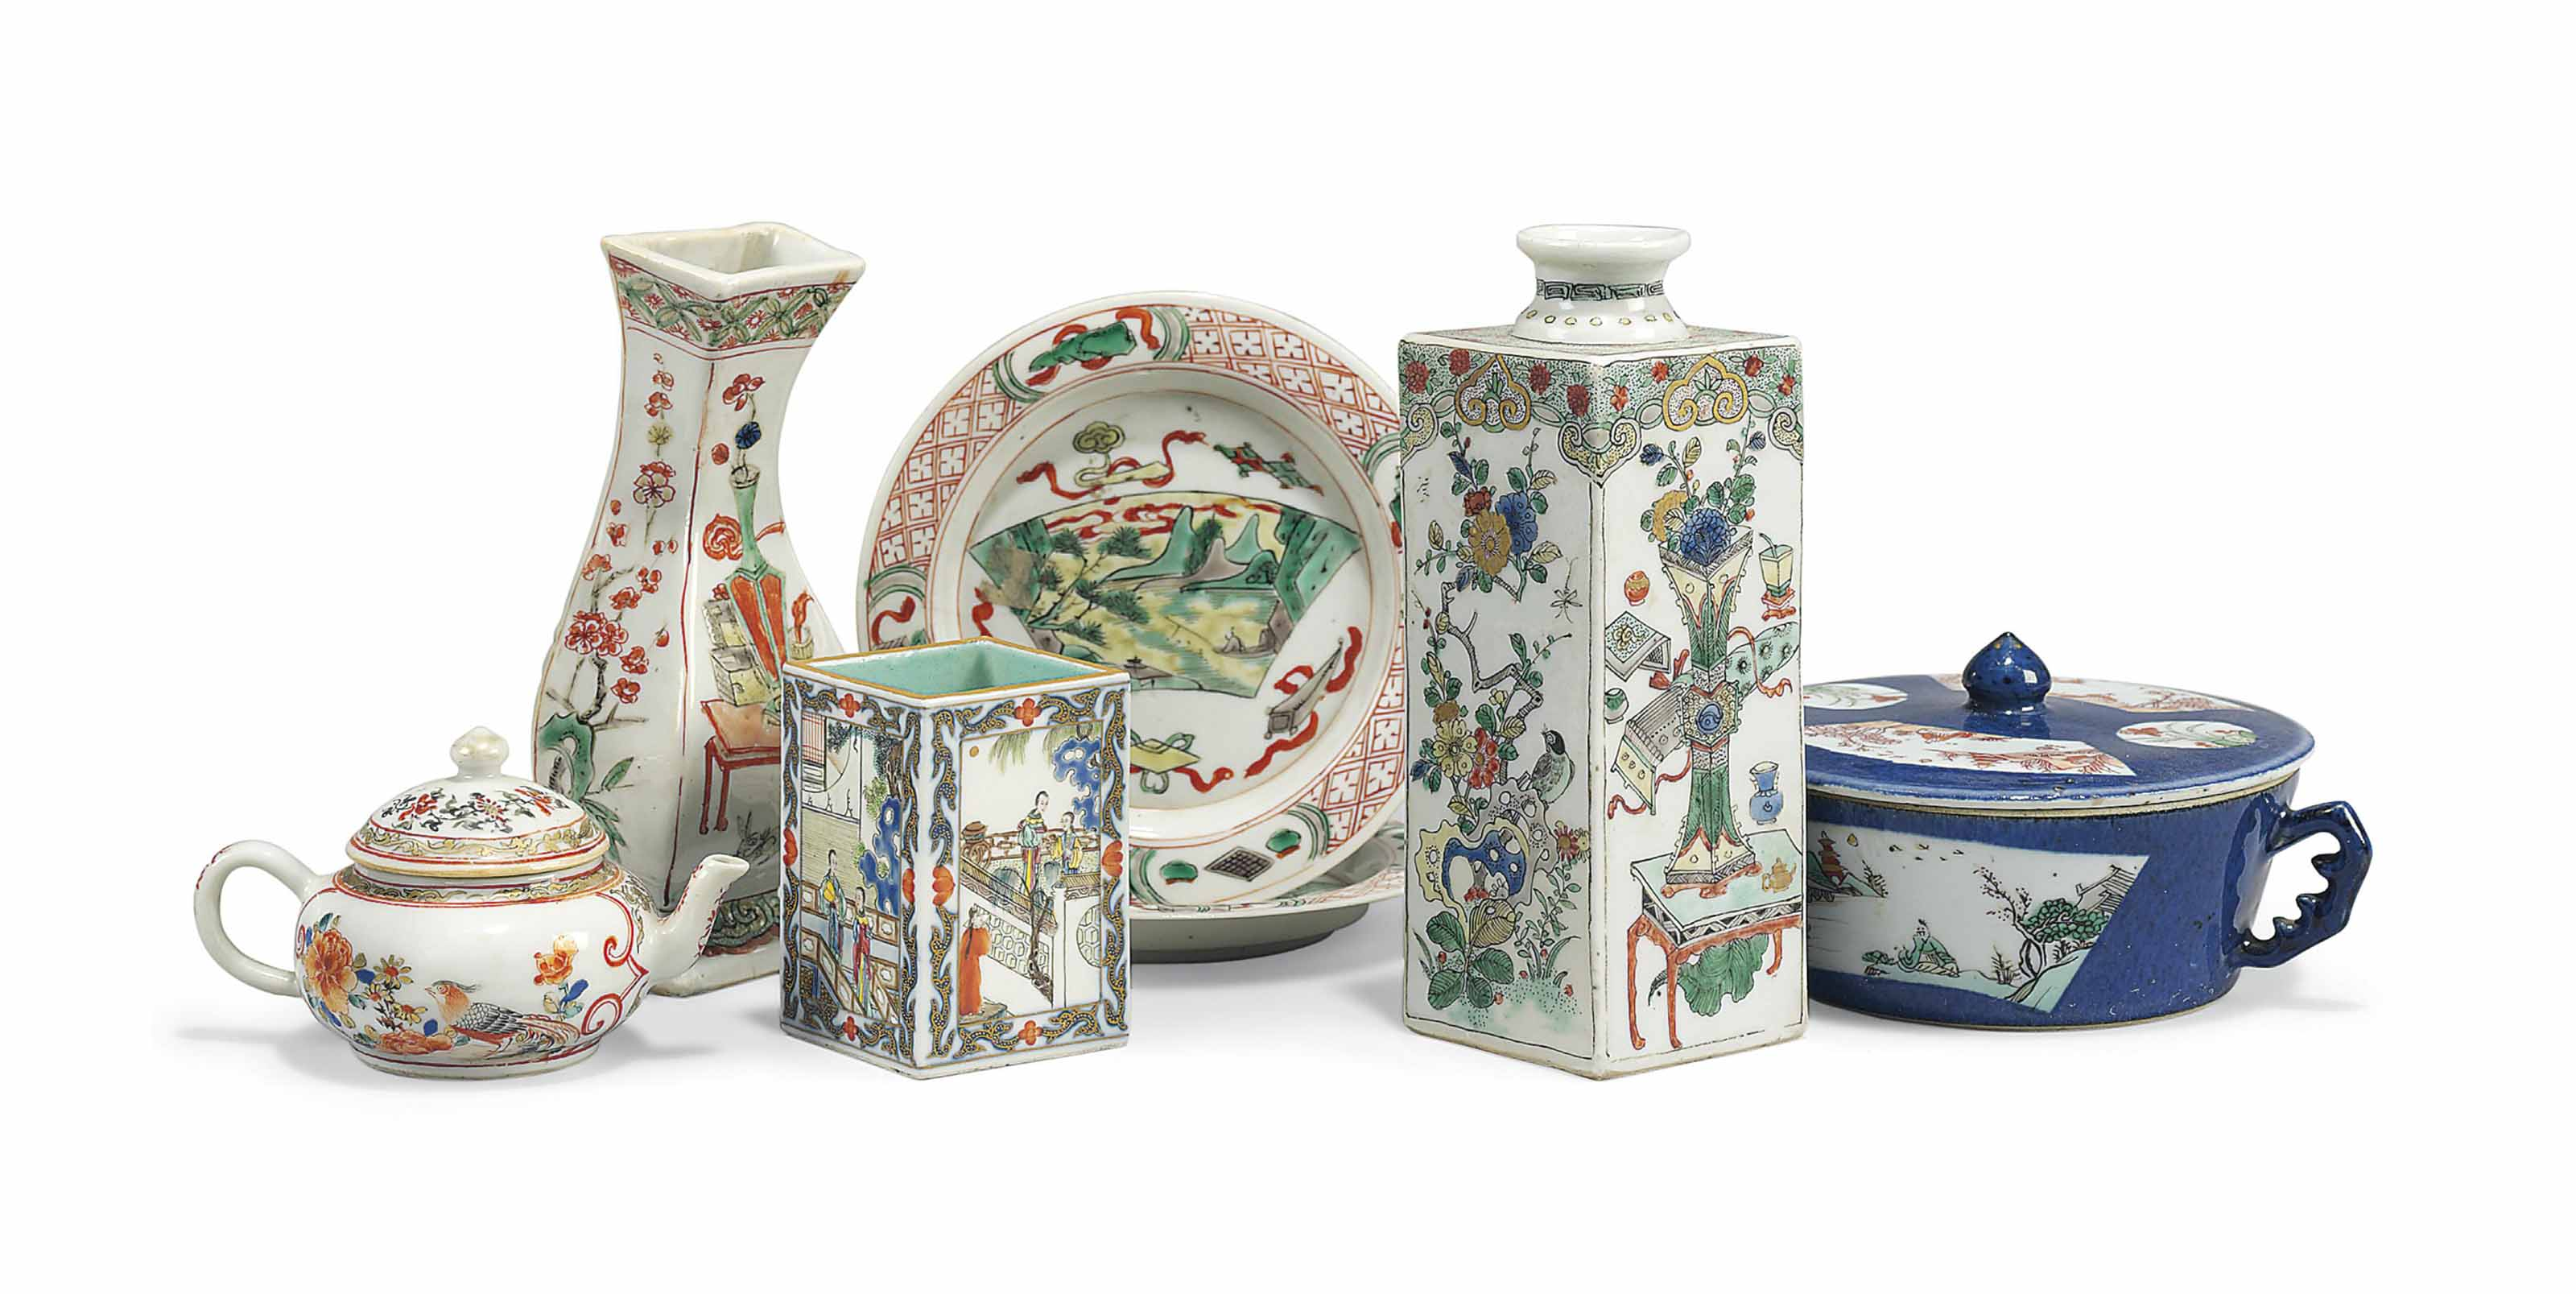 A GROUP OF SMALL CHINESE PORCELAIN VESSELS